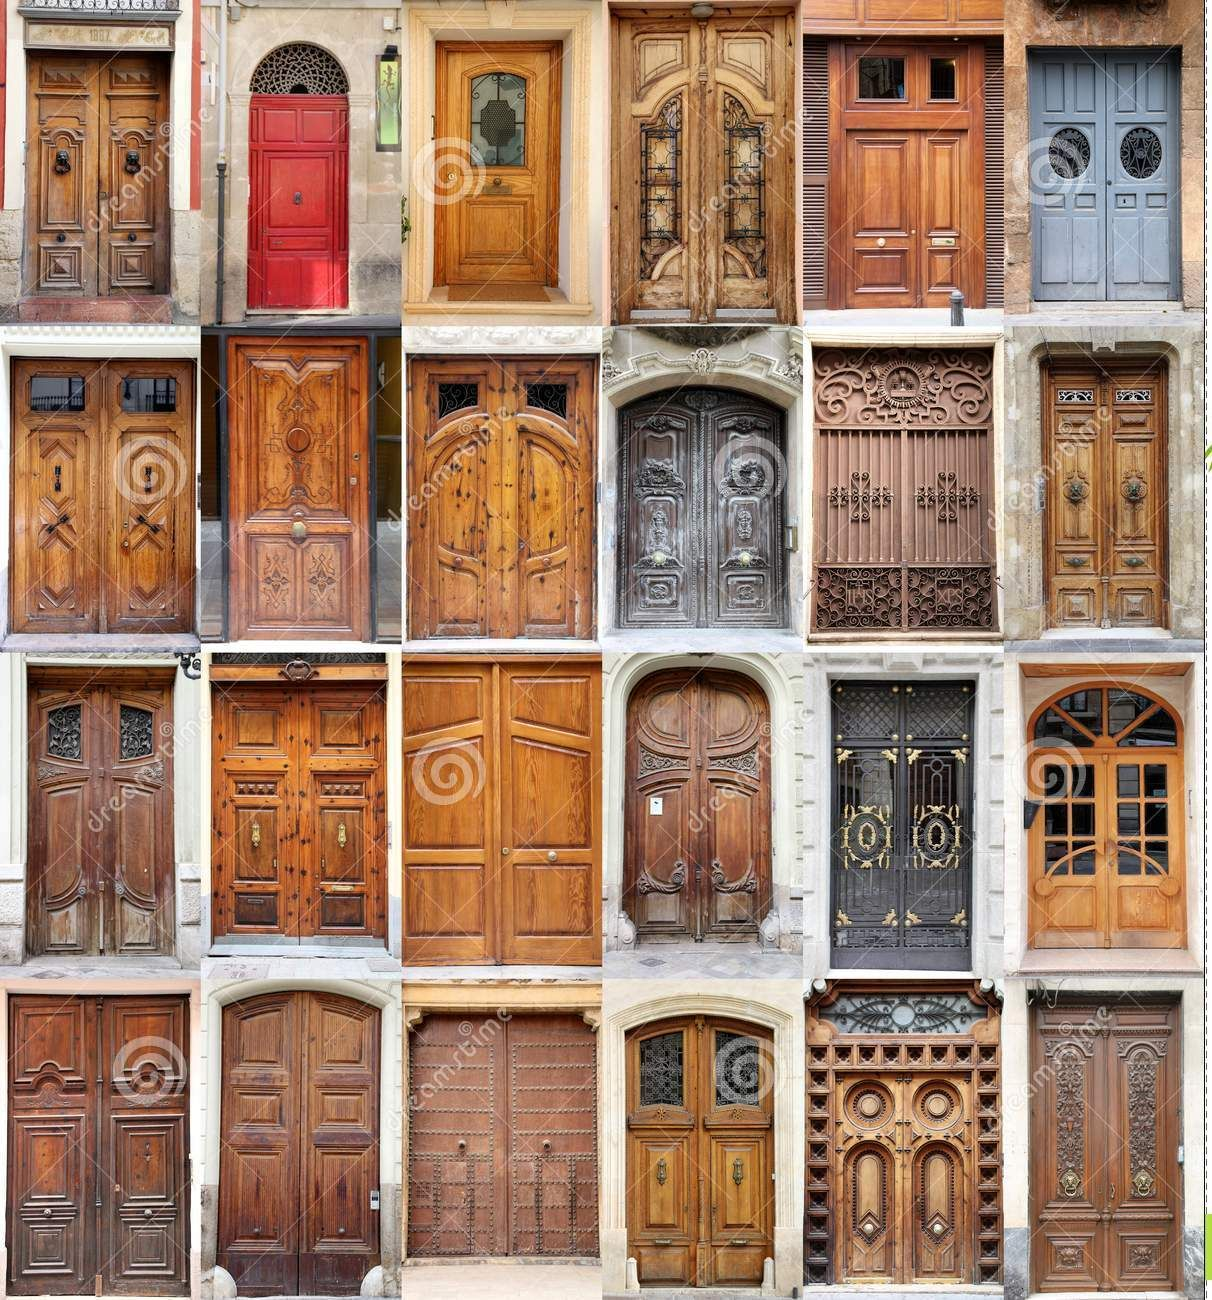 old window design - Google Search | Game Environment: Door ...